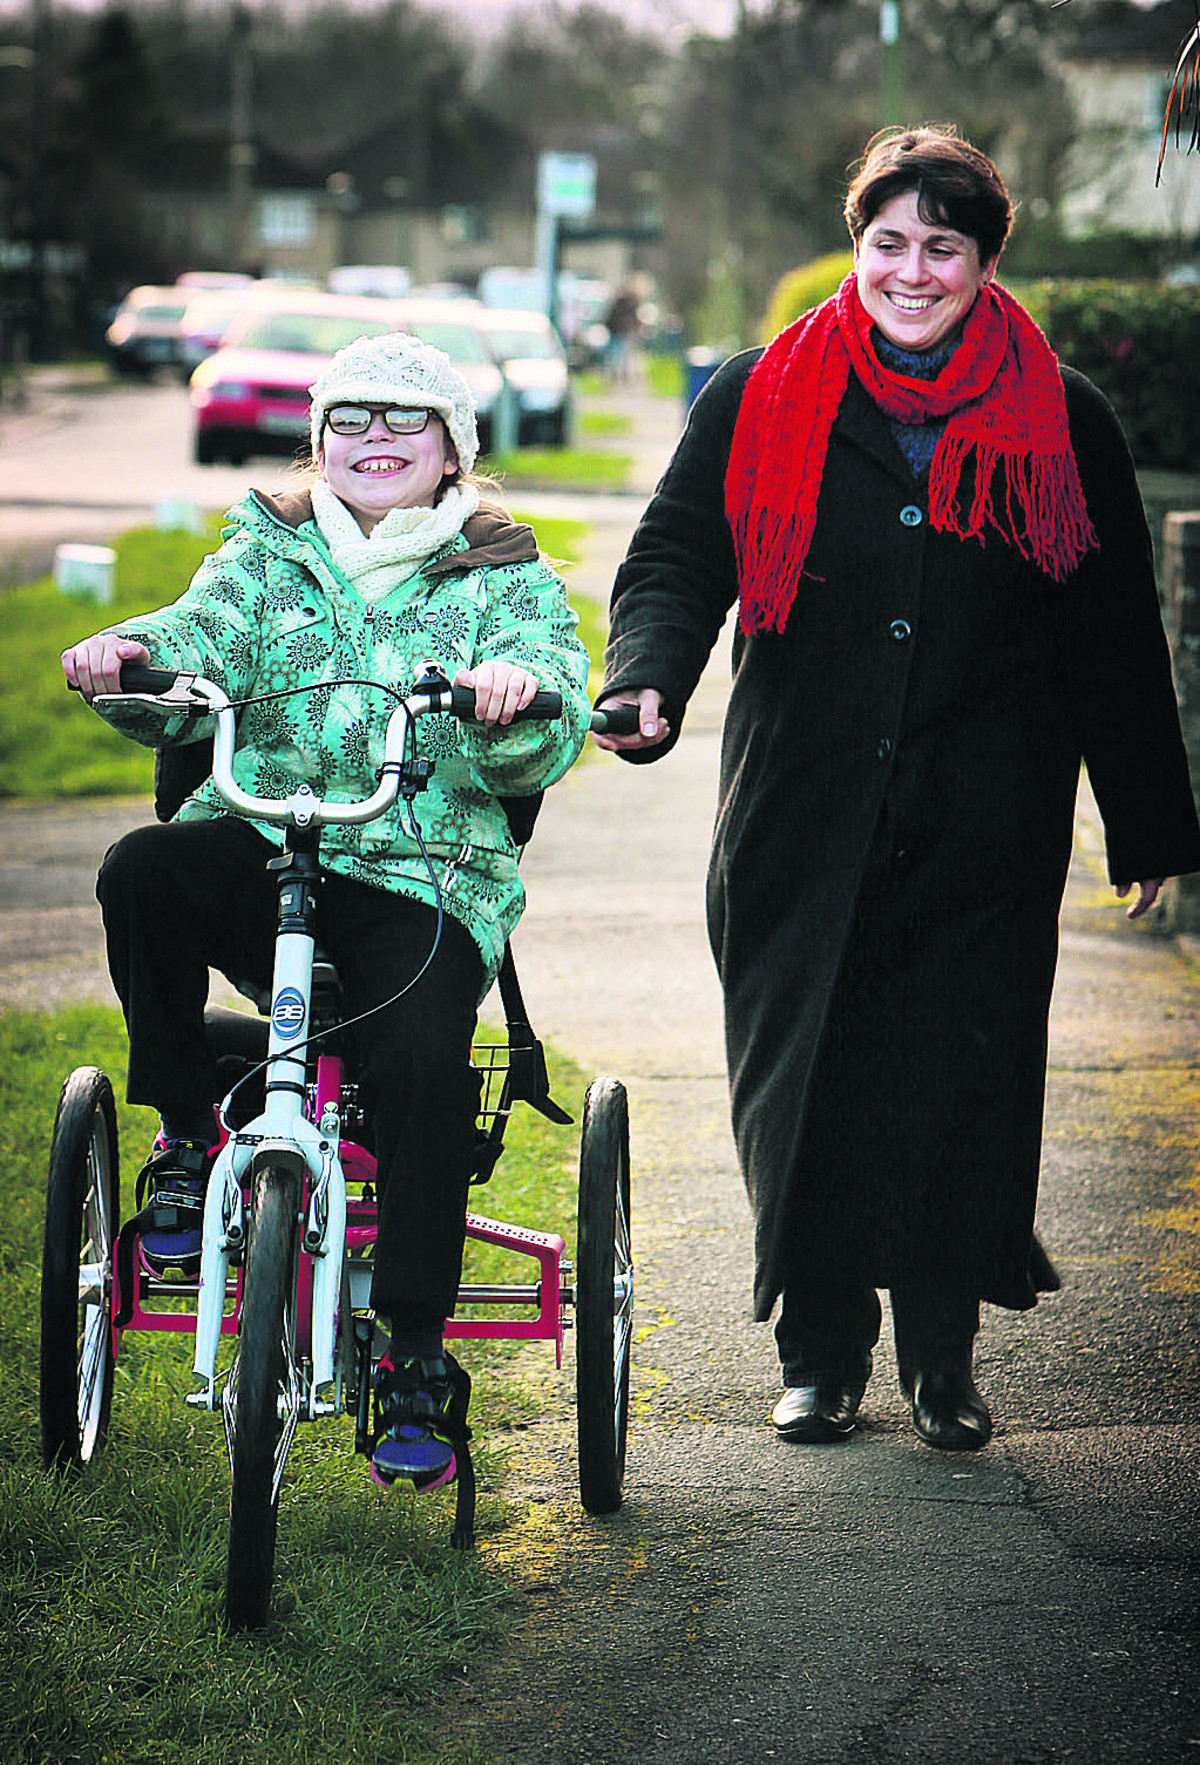 Ten-year-old Judith Stickings of Risinghurst who has cerebral palsy, pictured riding her new trike with mum, Gillian